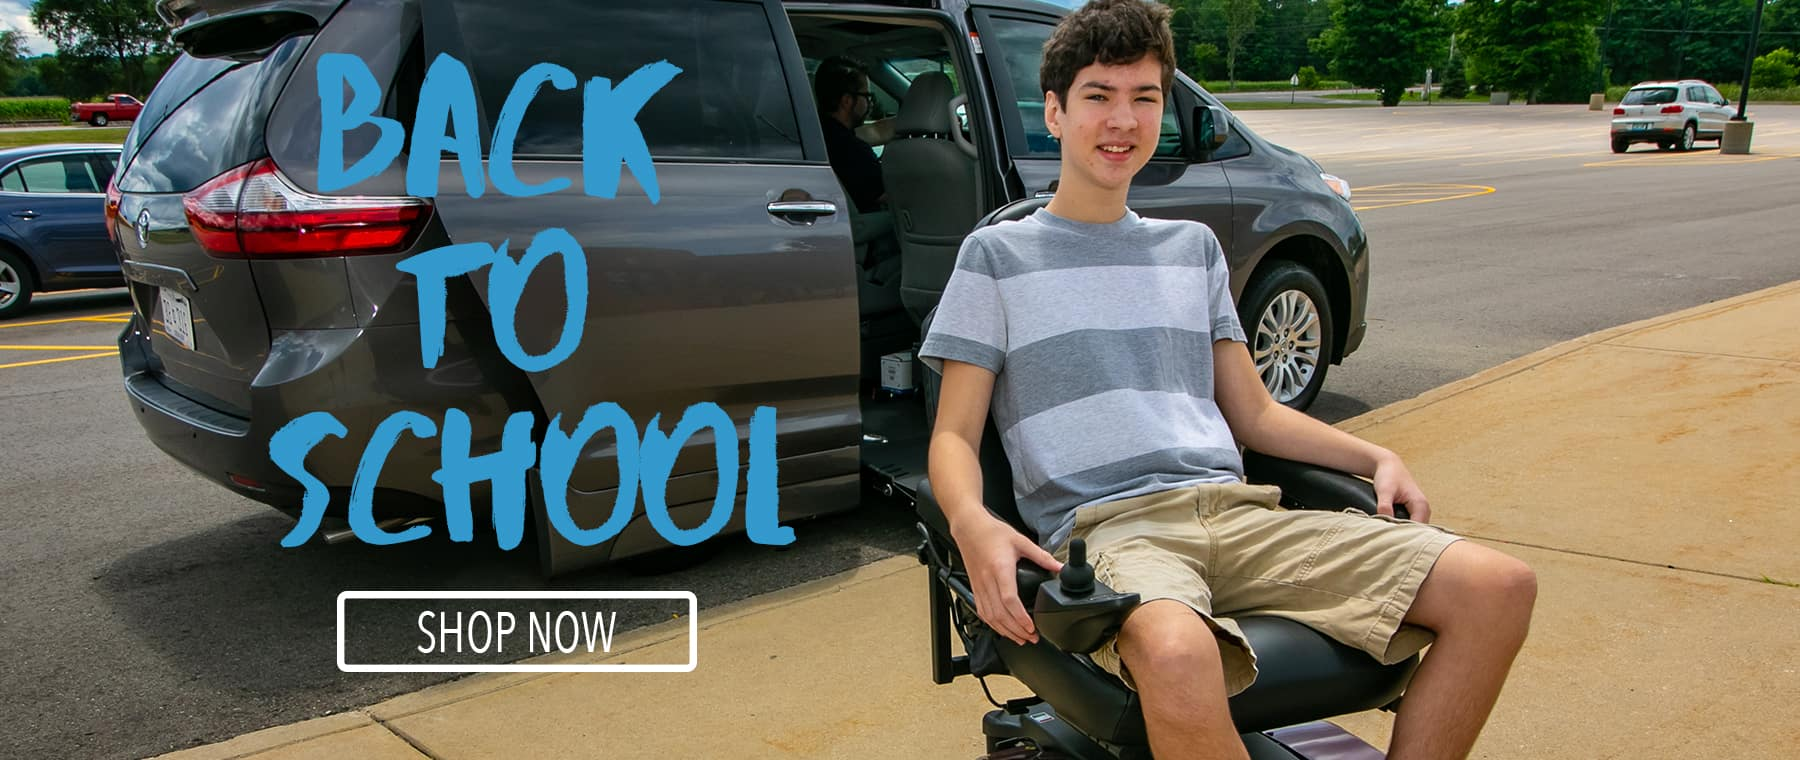 Back to School with a Wheelchair Accessible Van from Freedom Motors USA